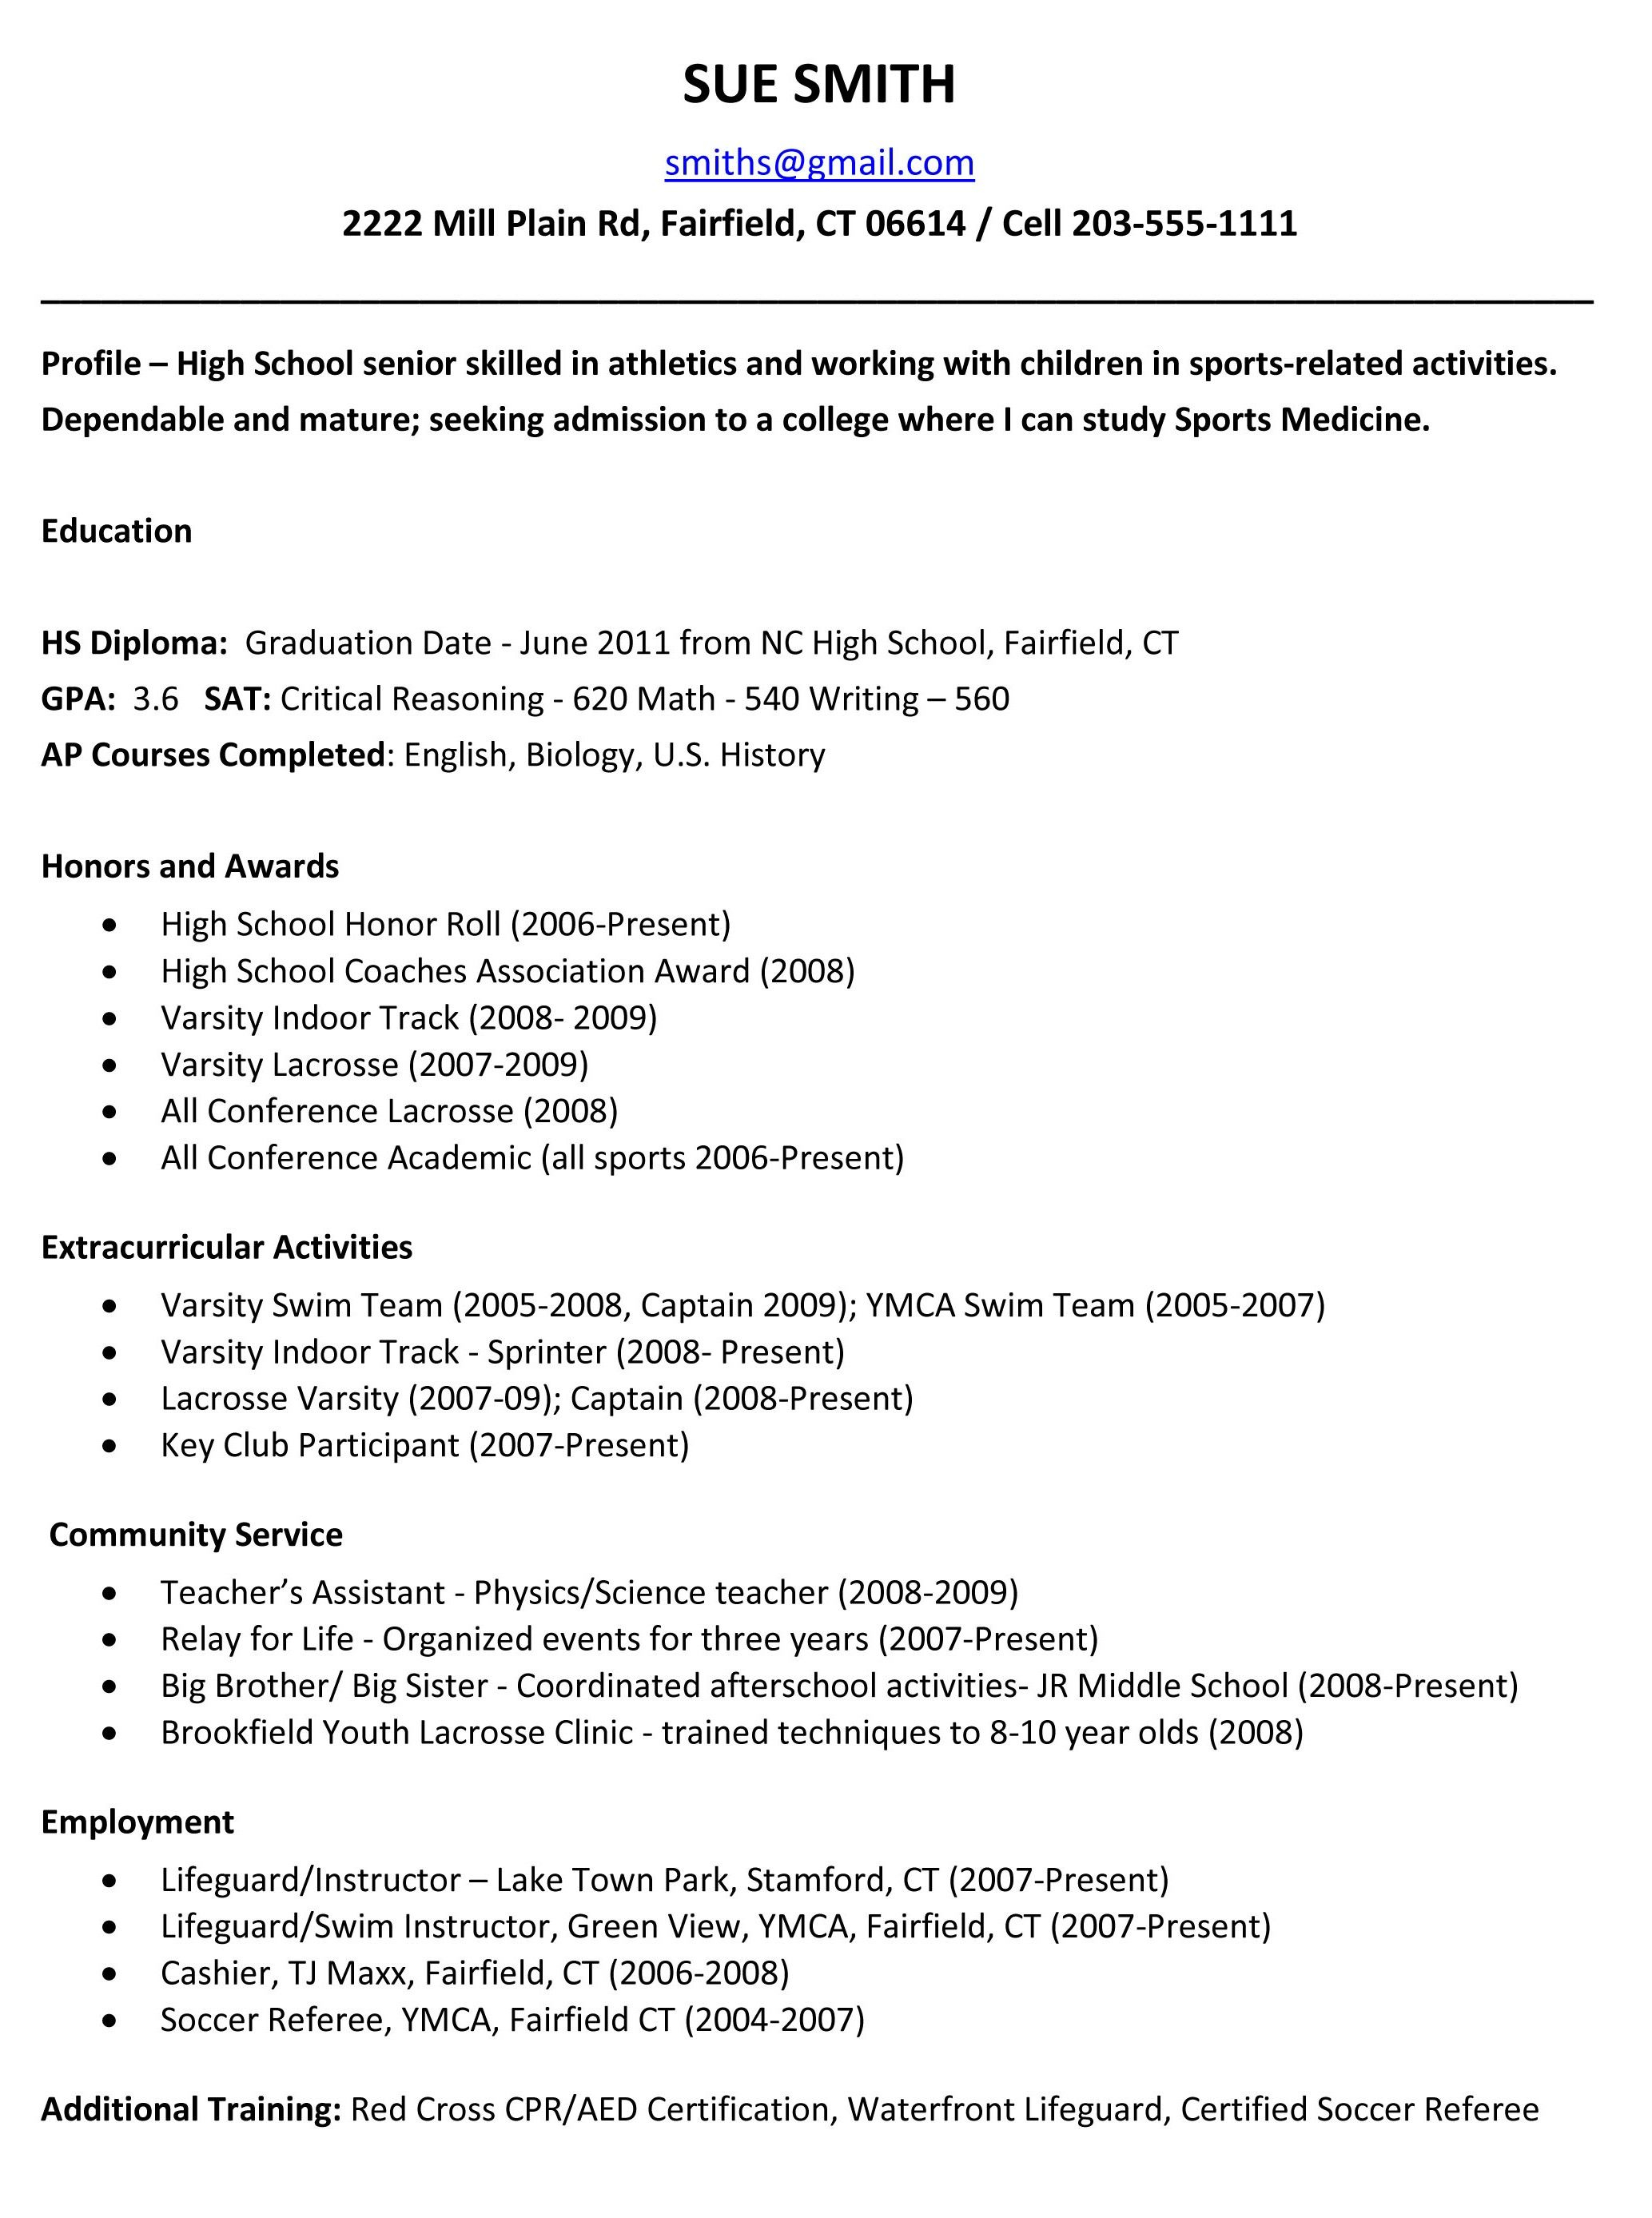 Common App Resume Example - Pin by Resumejob On Resume Job Pinterest